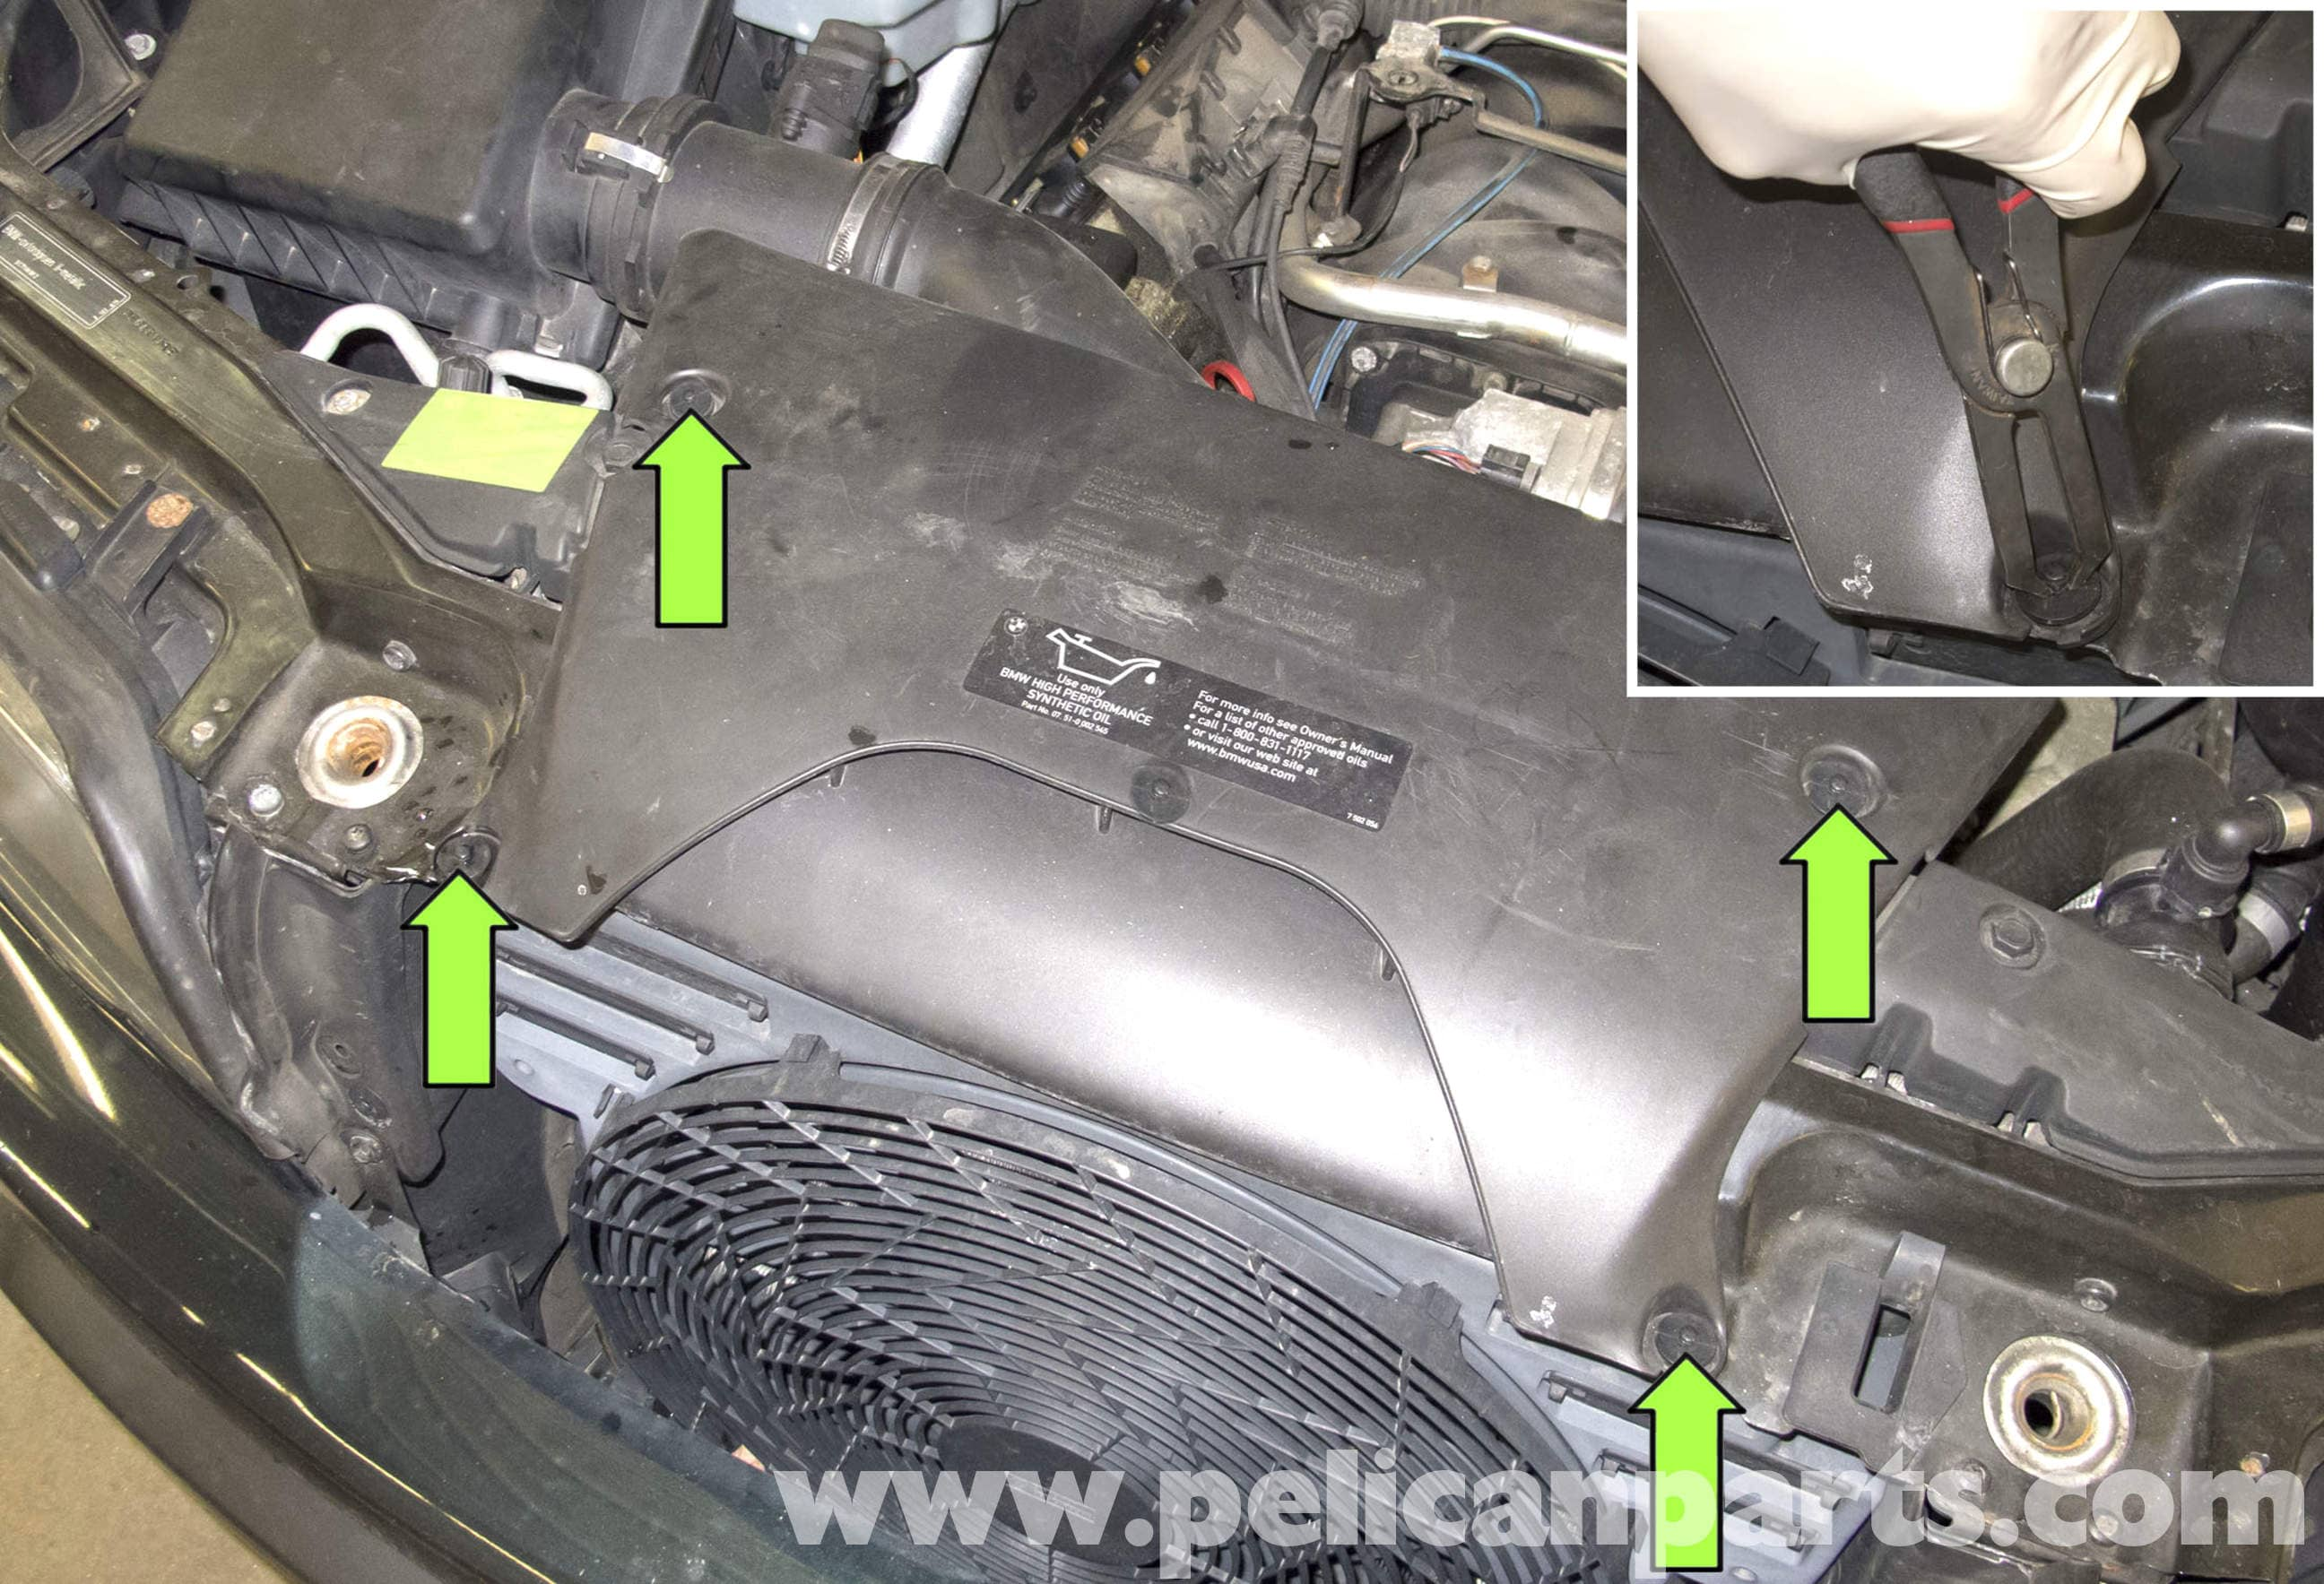 BMW X5 M62 8-Cylinder Camshaft Position Sensor Replacement